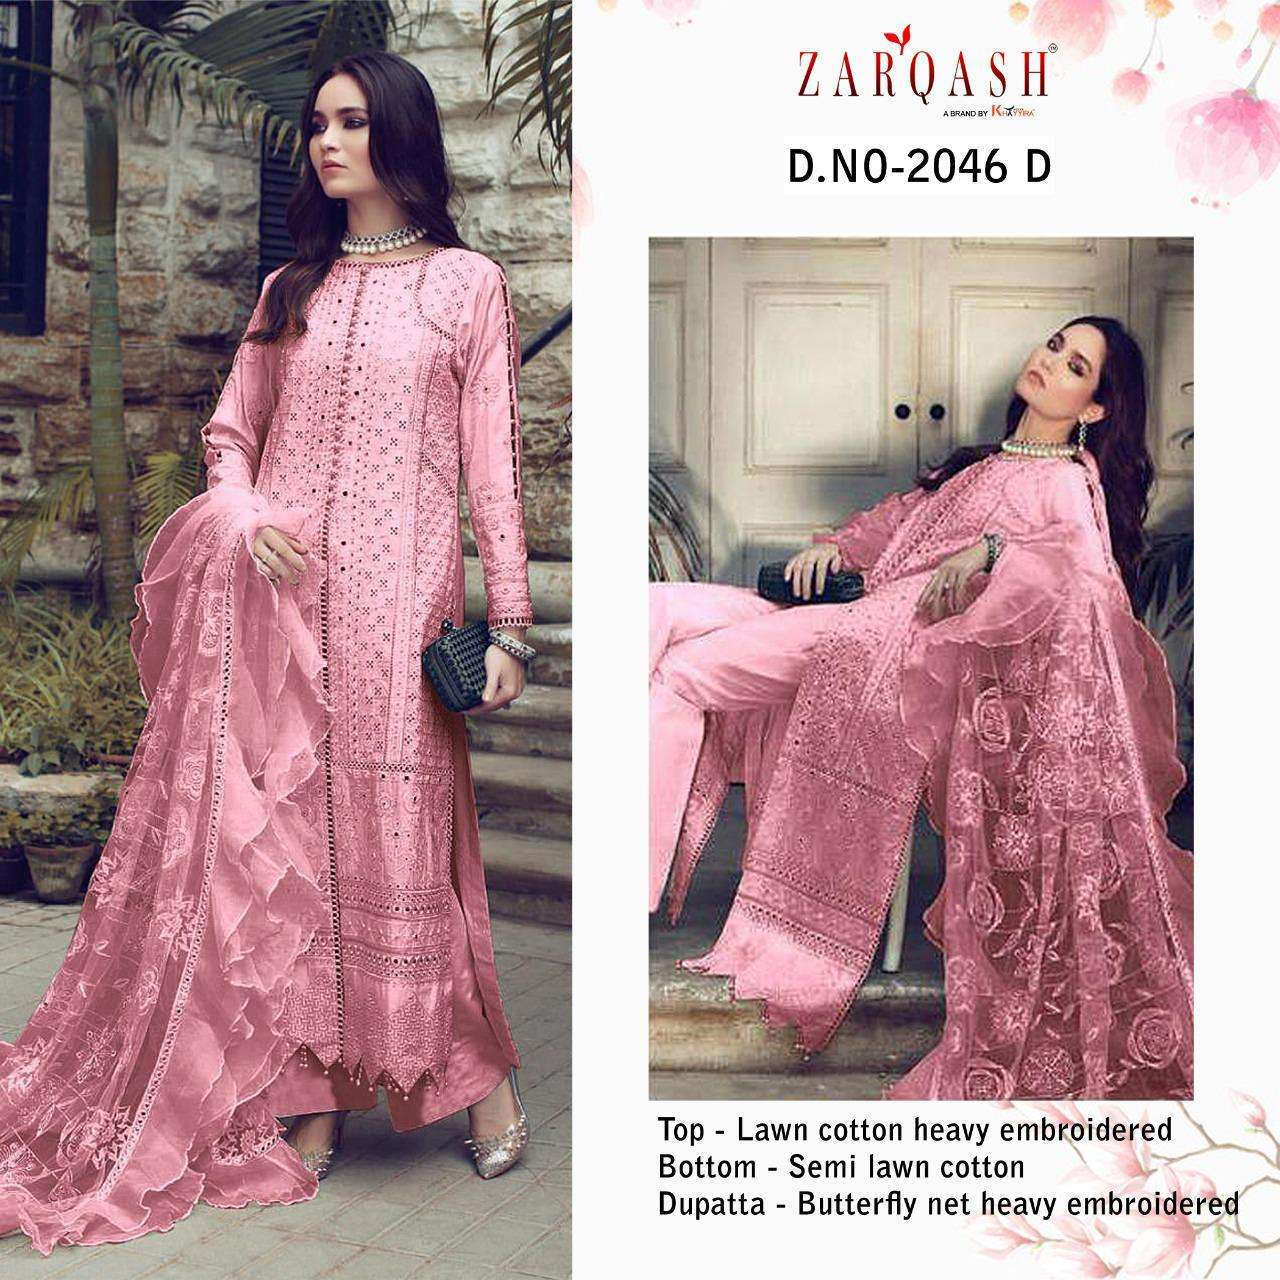 Zarqash Rouche Lawn Cotton Wit Heavy Embroidery Work Pakistani Suits collection